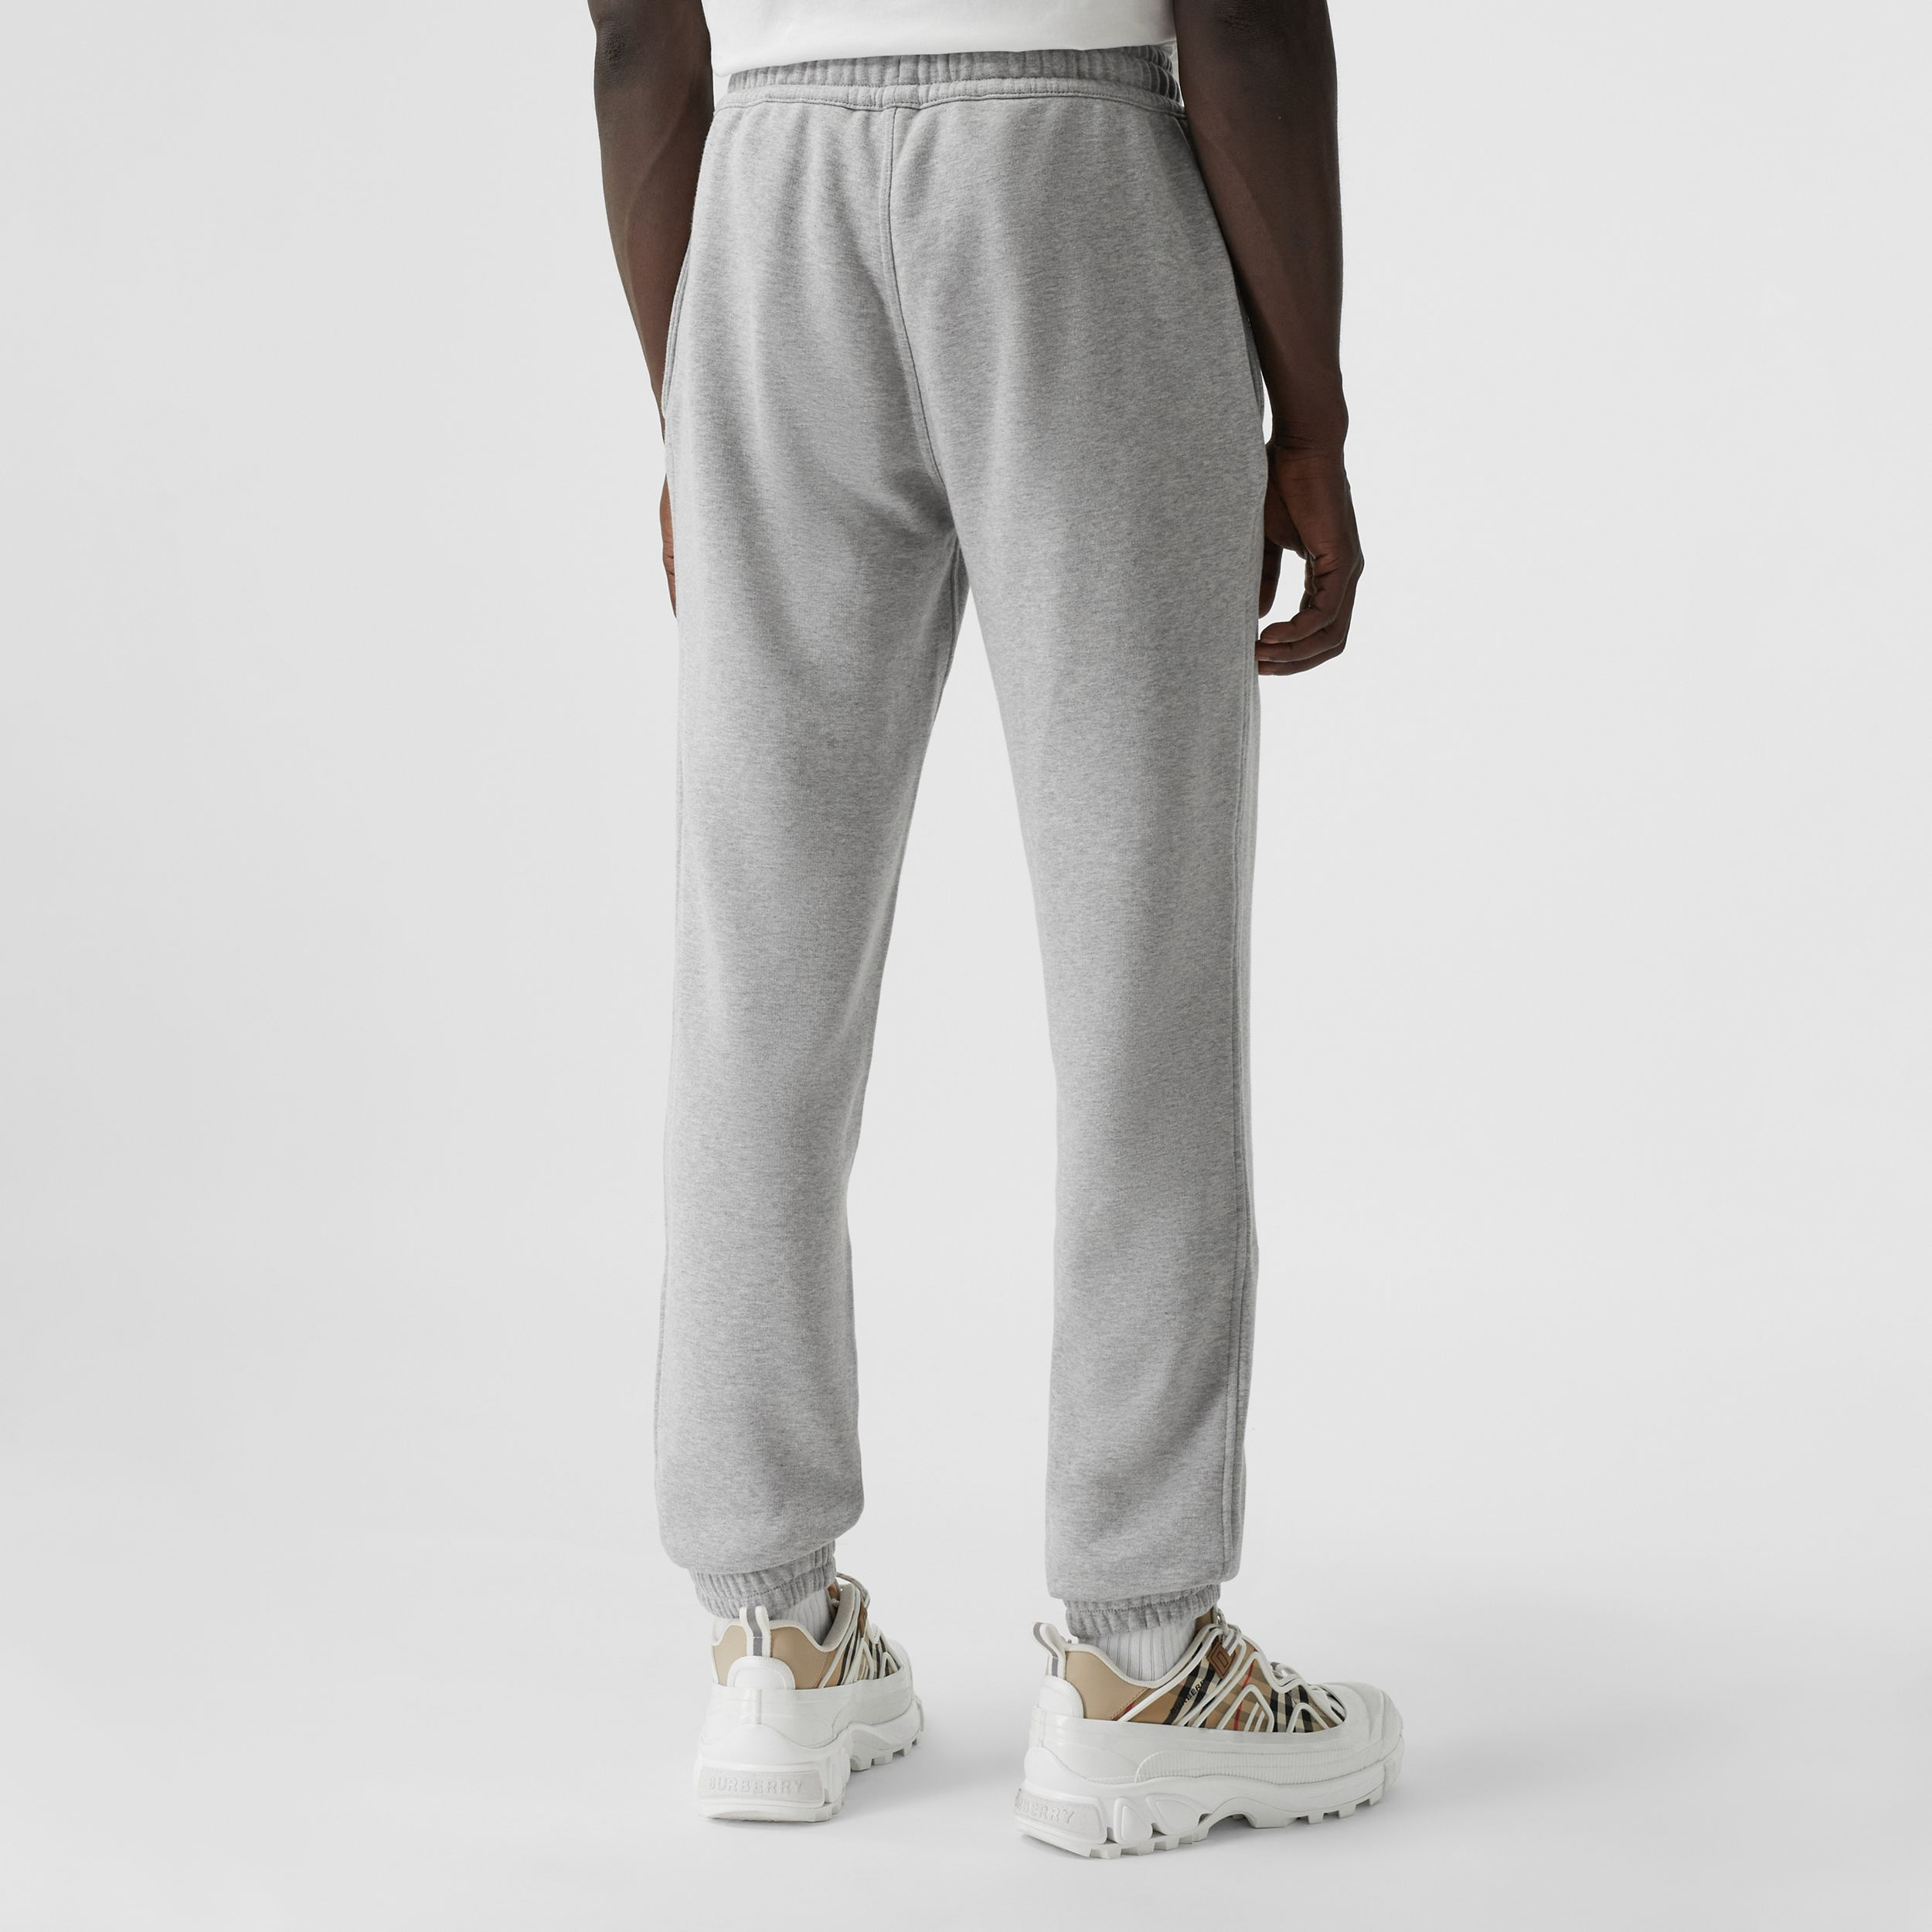 Logo Graphic Appliqué Cotton Jogging Pants in Pale Grey Melange - Men | Burberry - 3